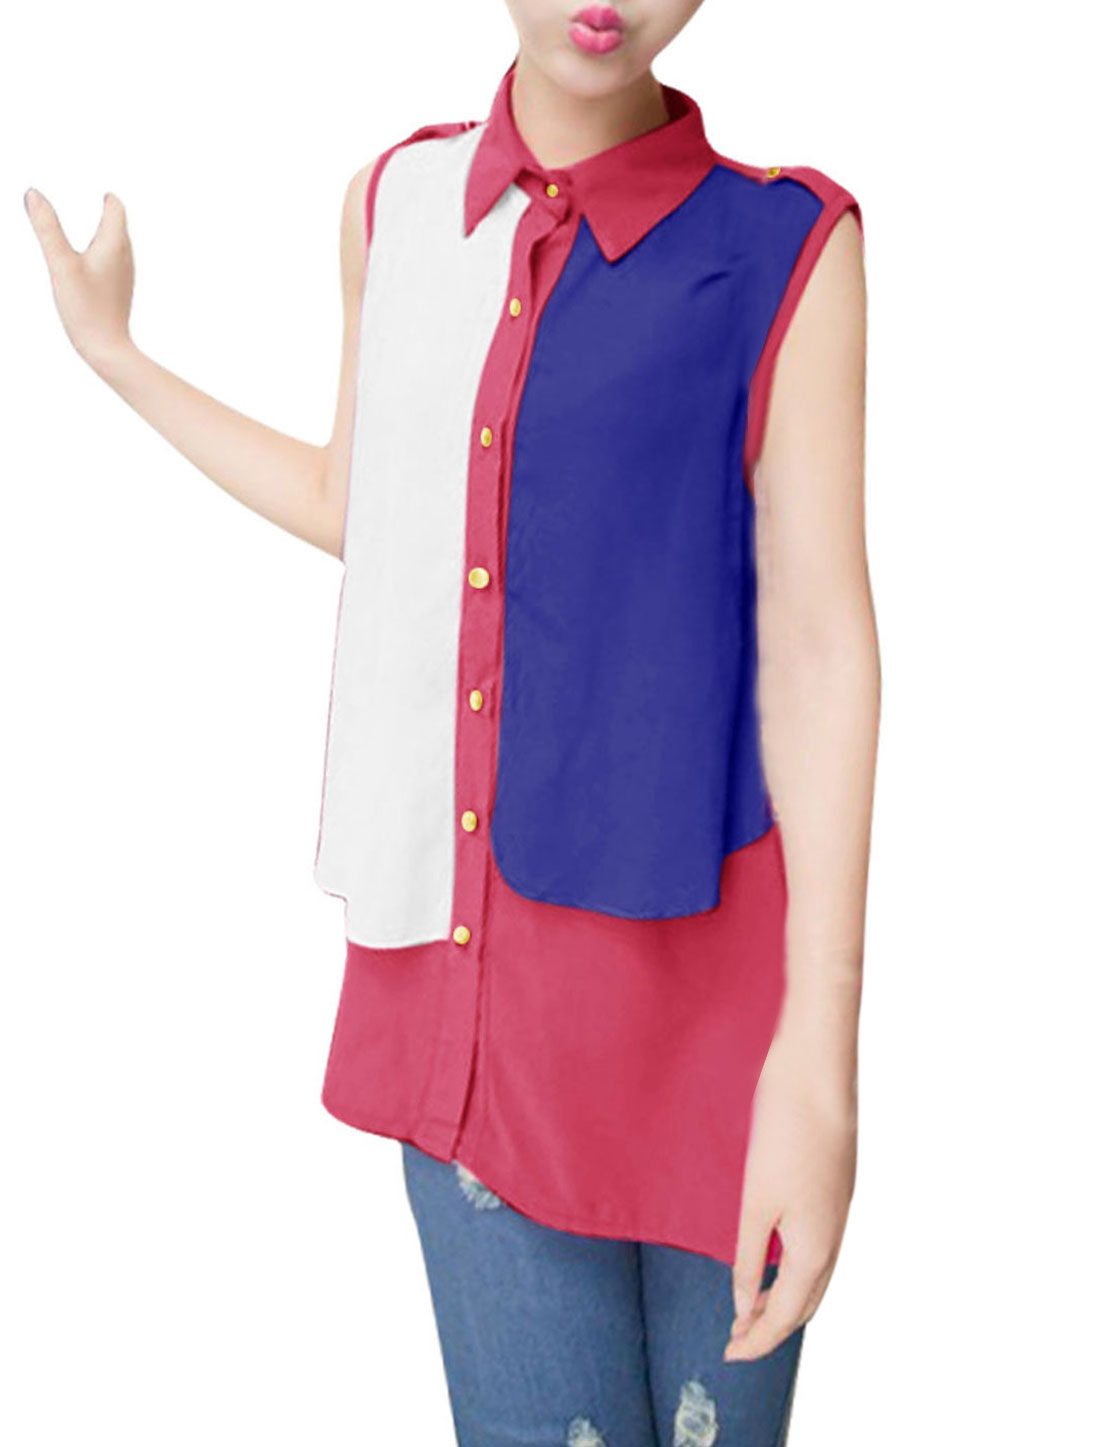 Woman Newly Royalblue Fuchsia Contrast Color Single-Breasted Front Blouse S